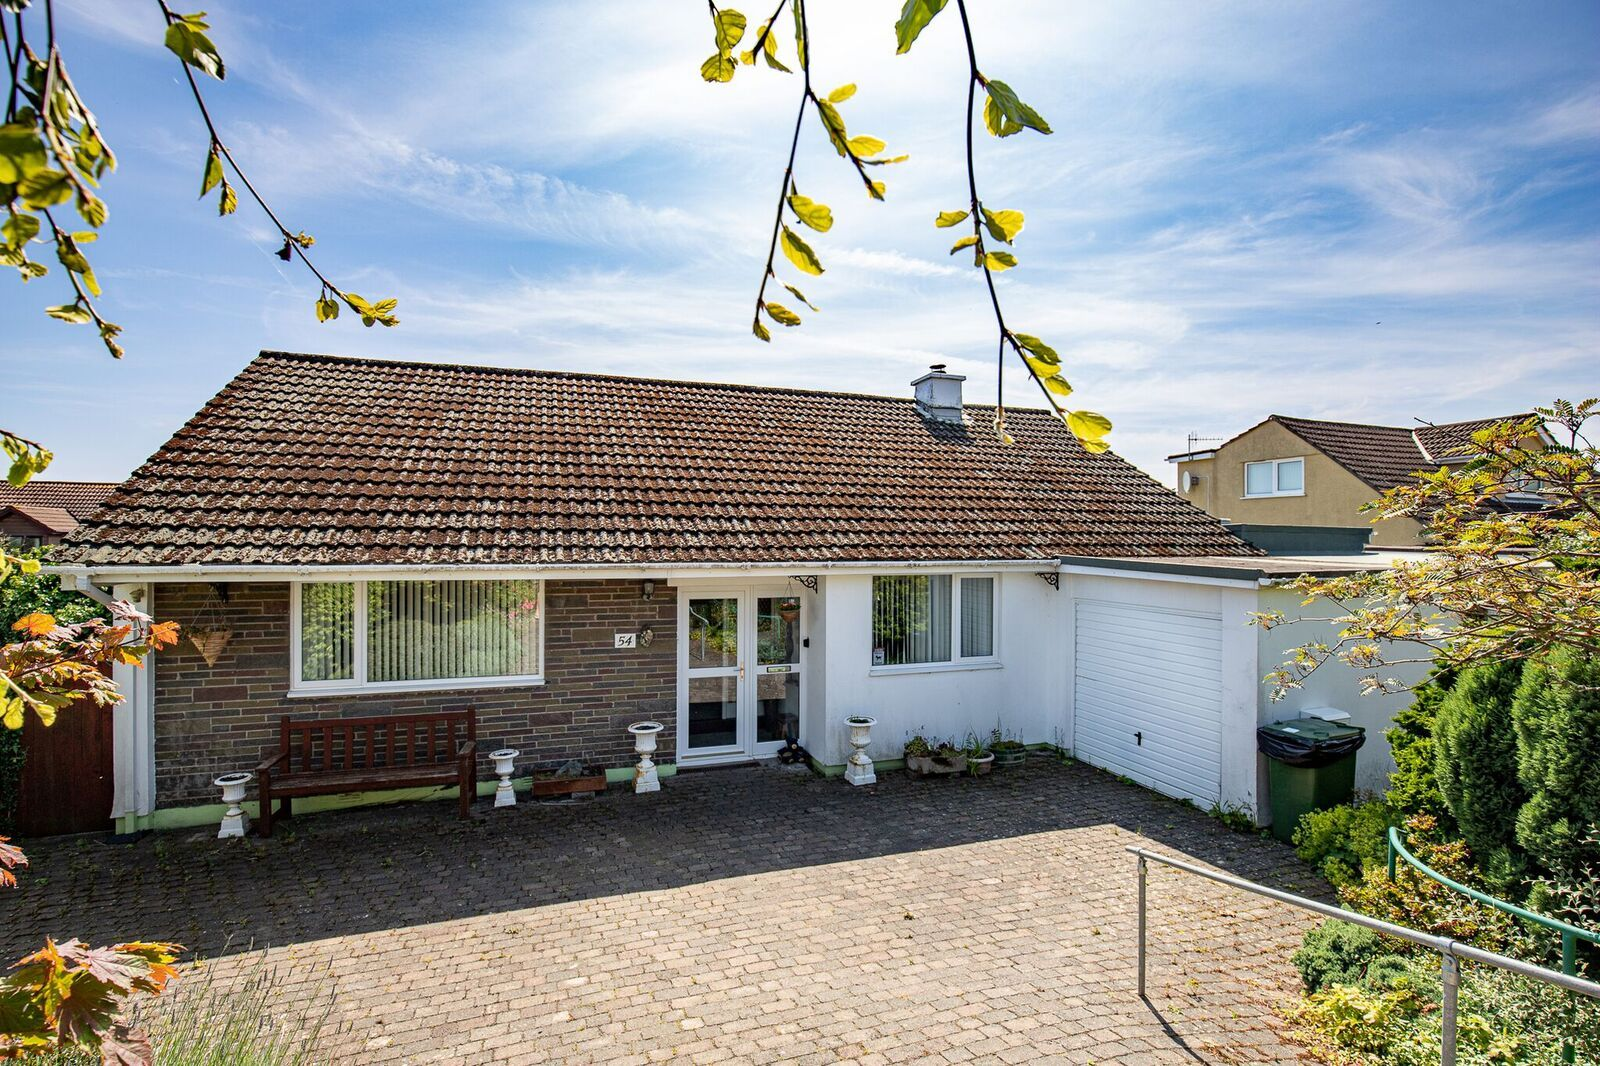 3 bedroom detached bungalow Sold in Onchan - Photograph 13